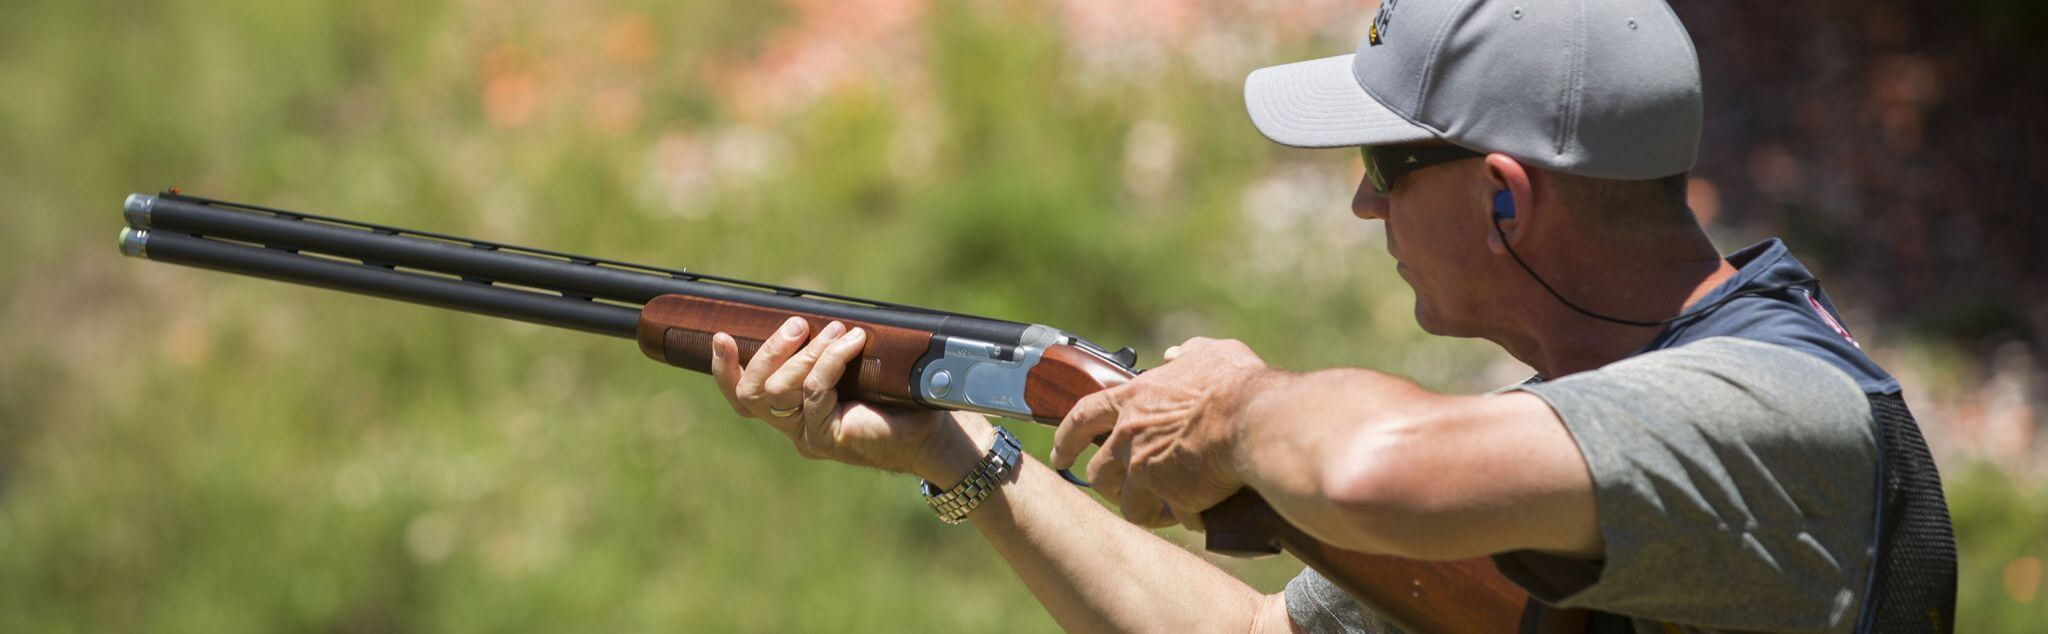 Clay Pigeon Shooting in North Yorkshire